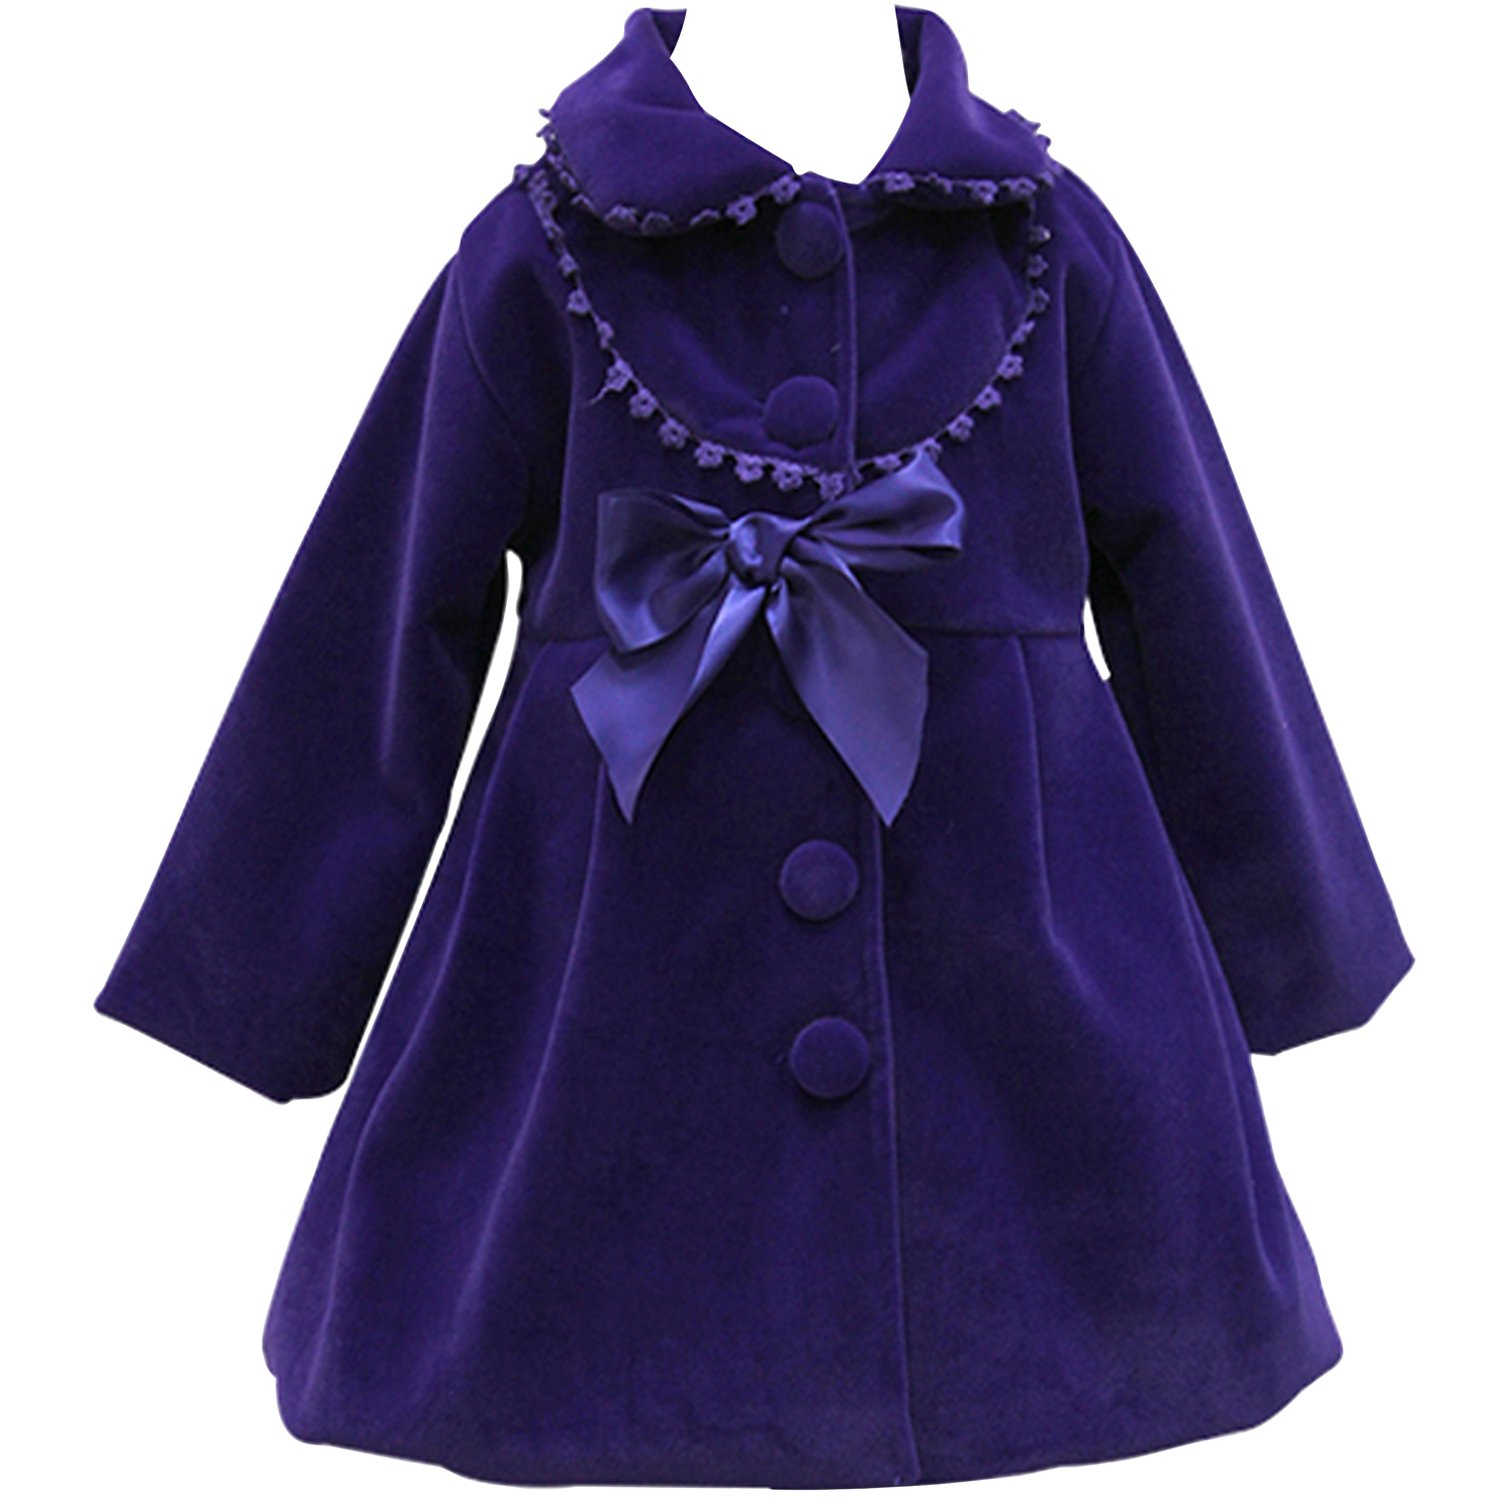 HBDesign Cute Imitation Wool Bowknot Girl Overcoat Dress Coat Outer Wear Winter Violet Size 6